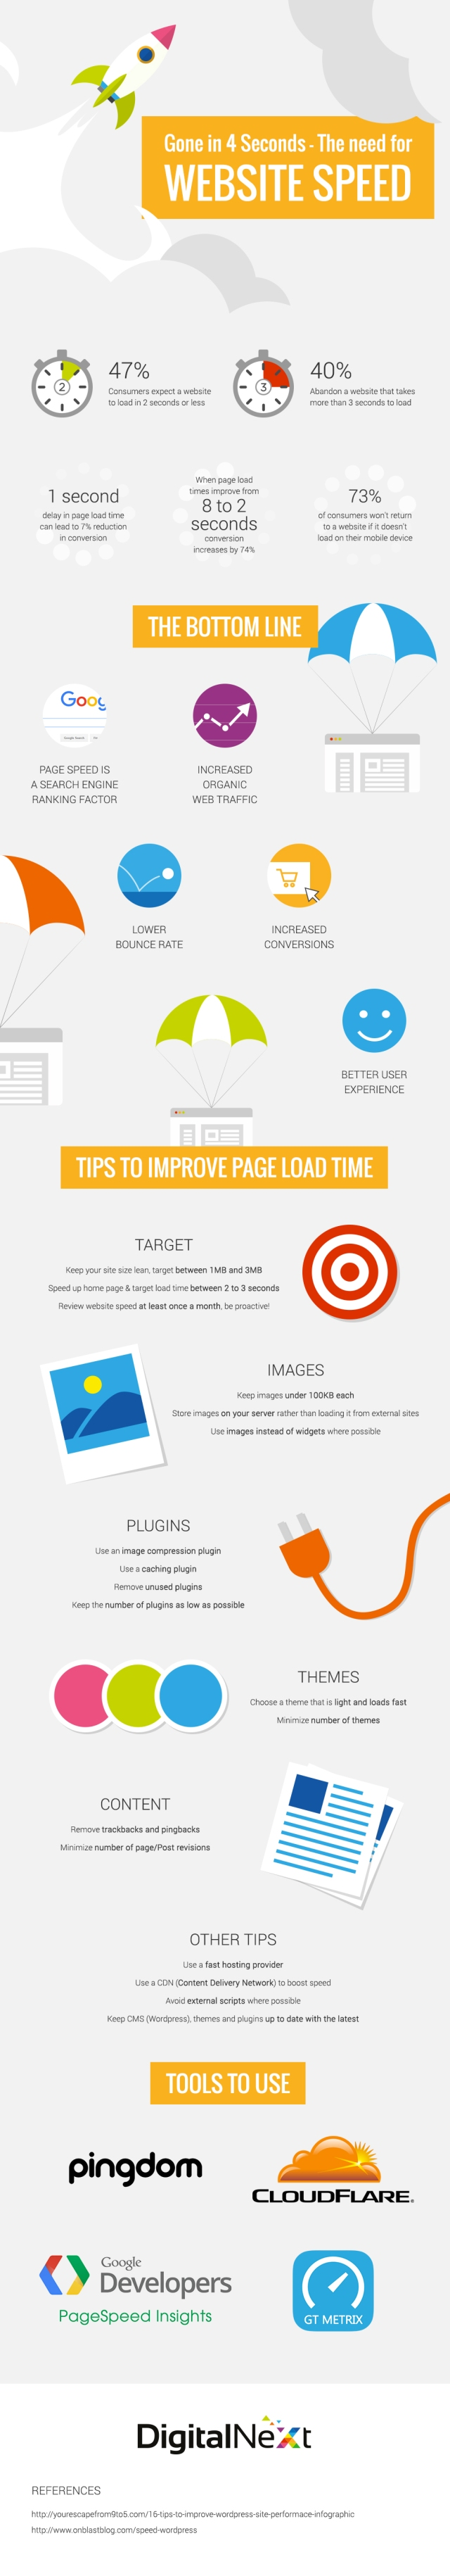 Website Basics Tips & Tools to Improve Website Speed